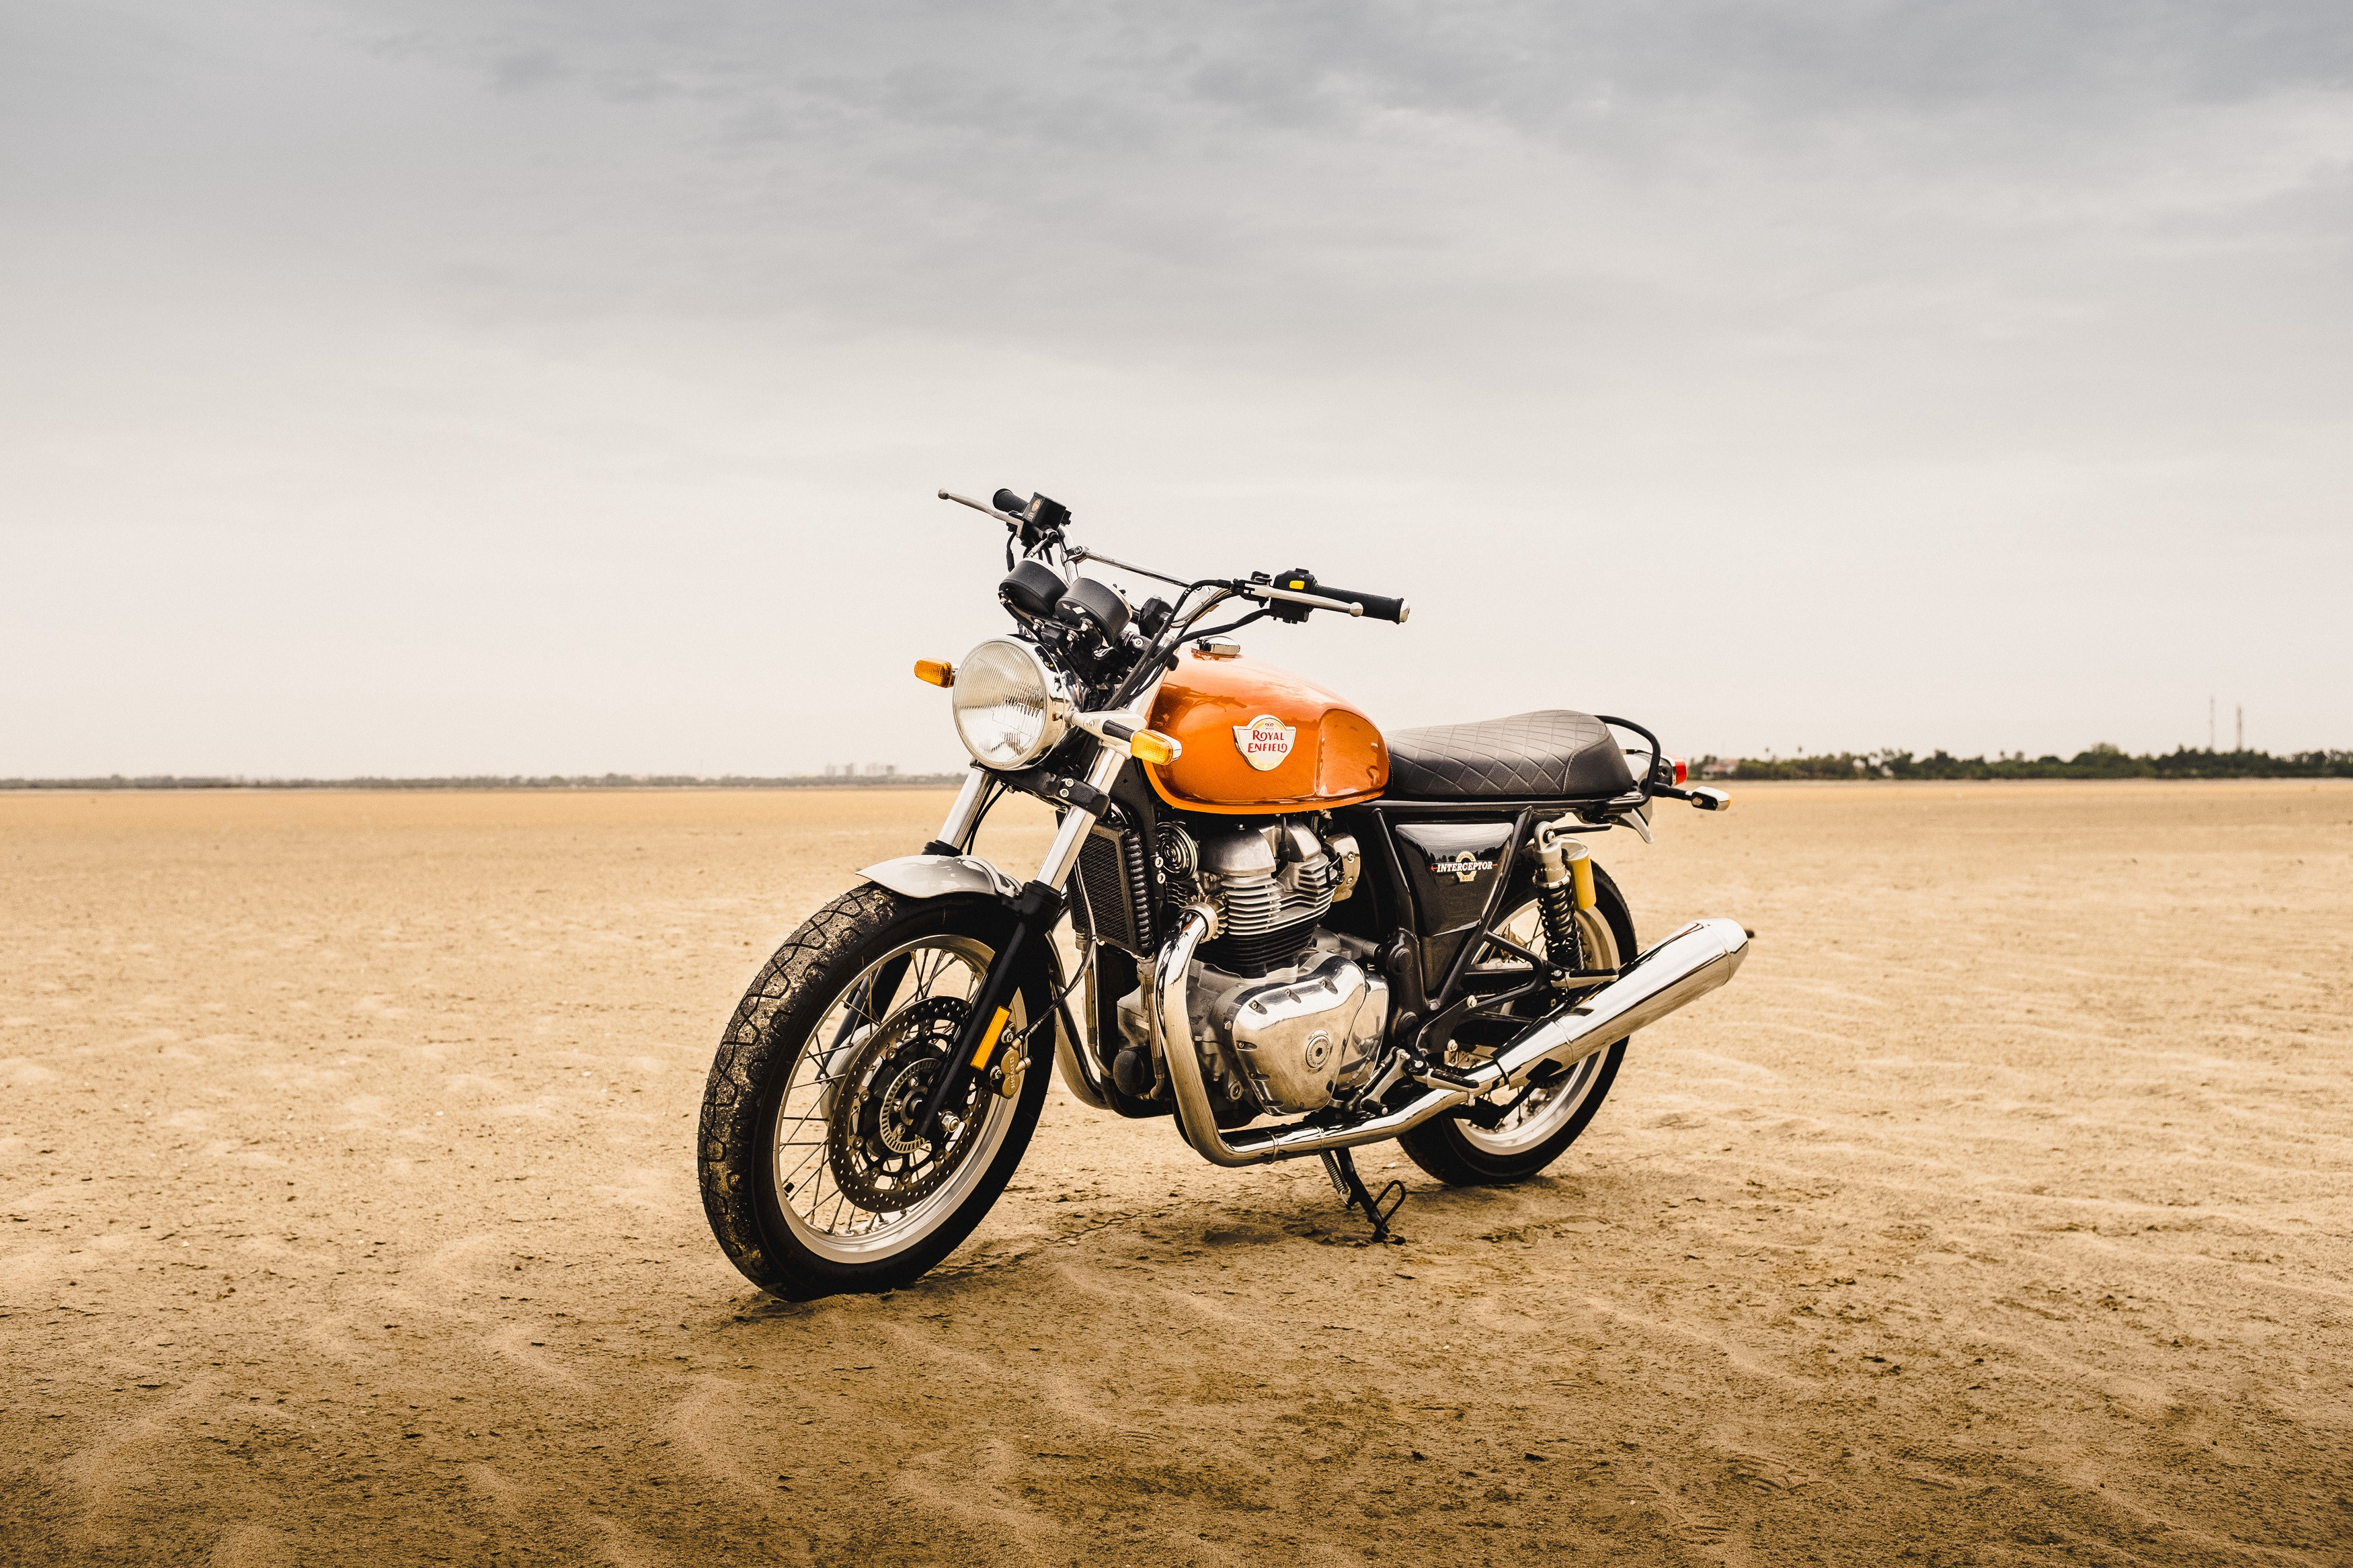 Royal Enfield Nails It With The Continental Gt And Interceptor 650 Prices By Tushar Burman Motovore